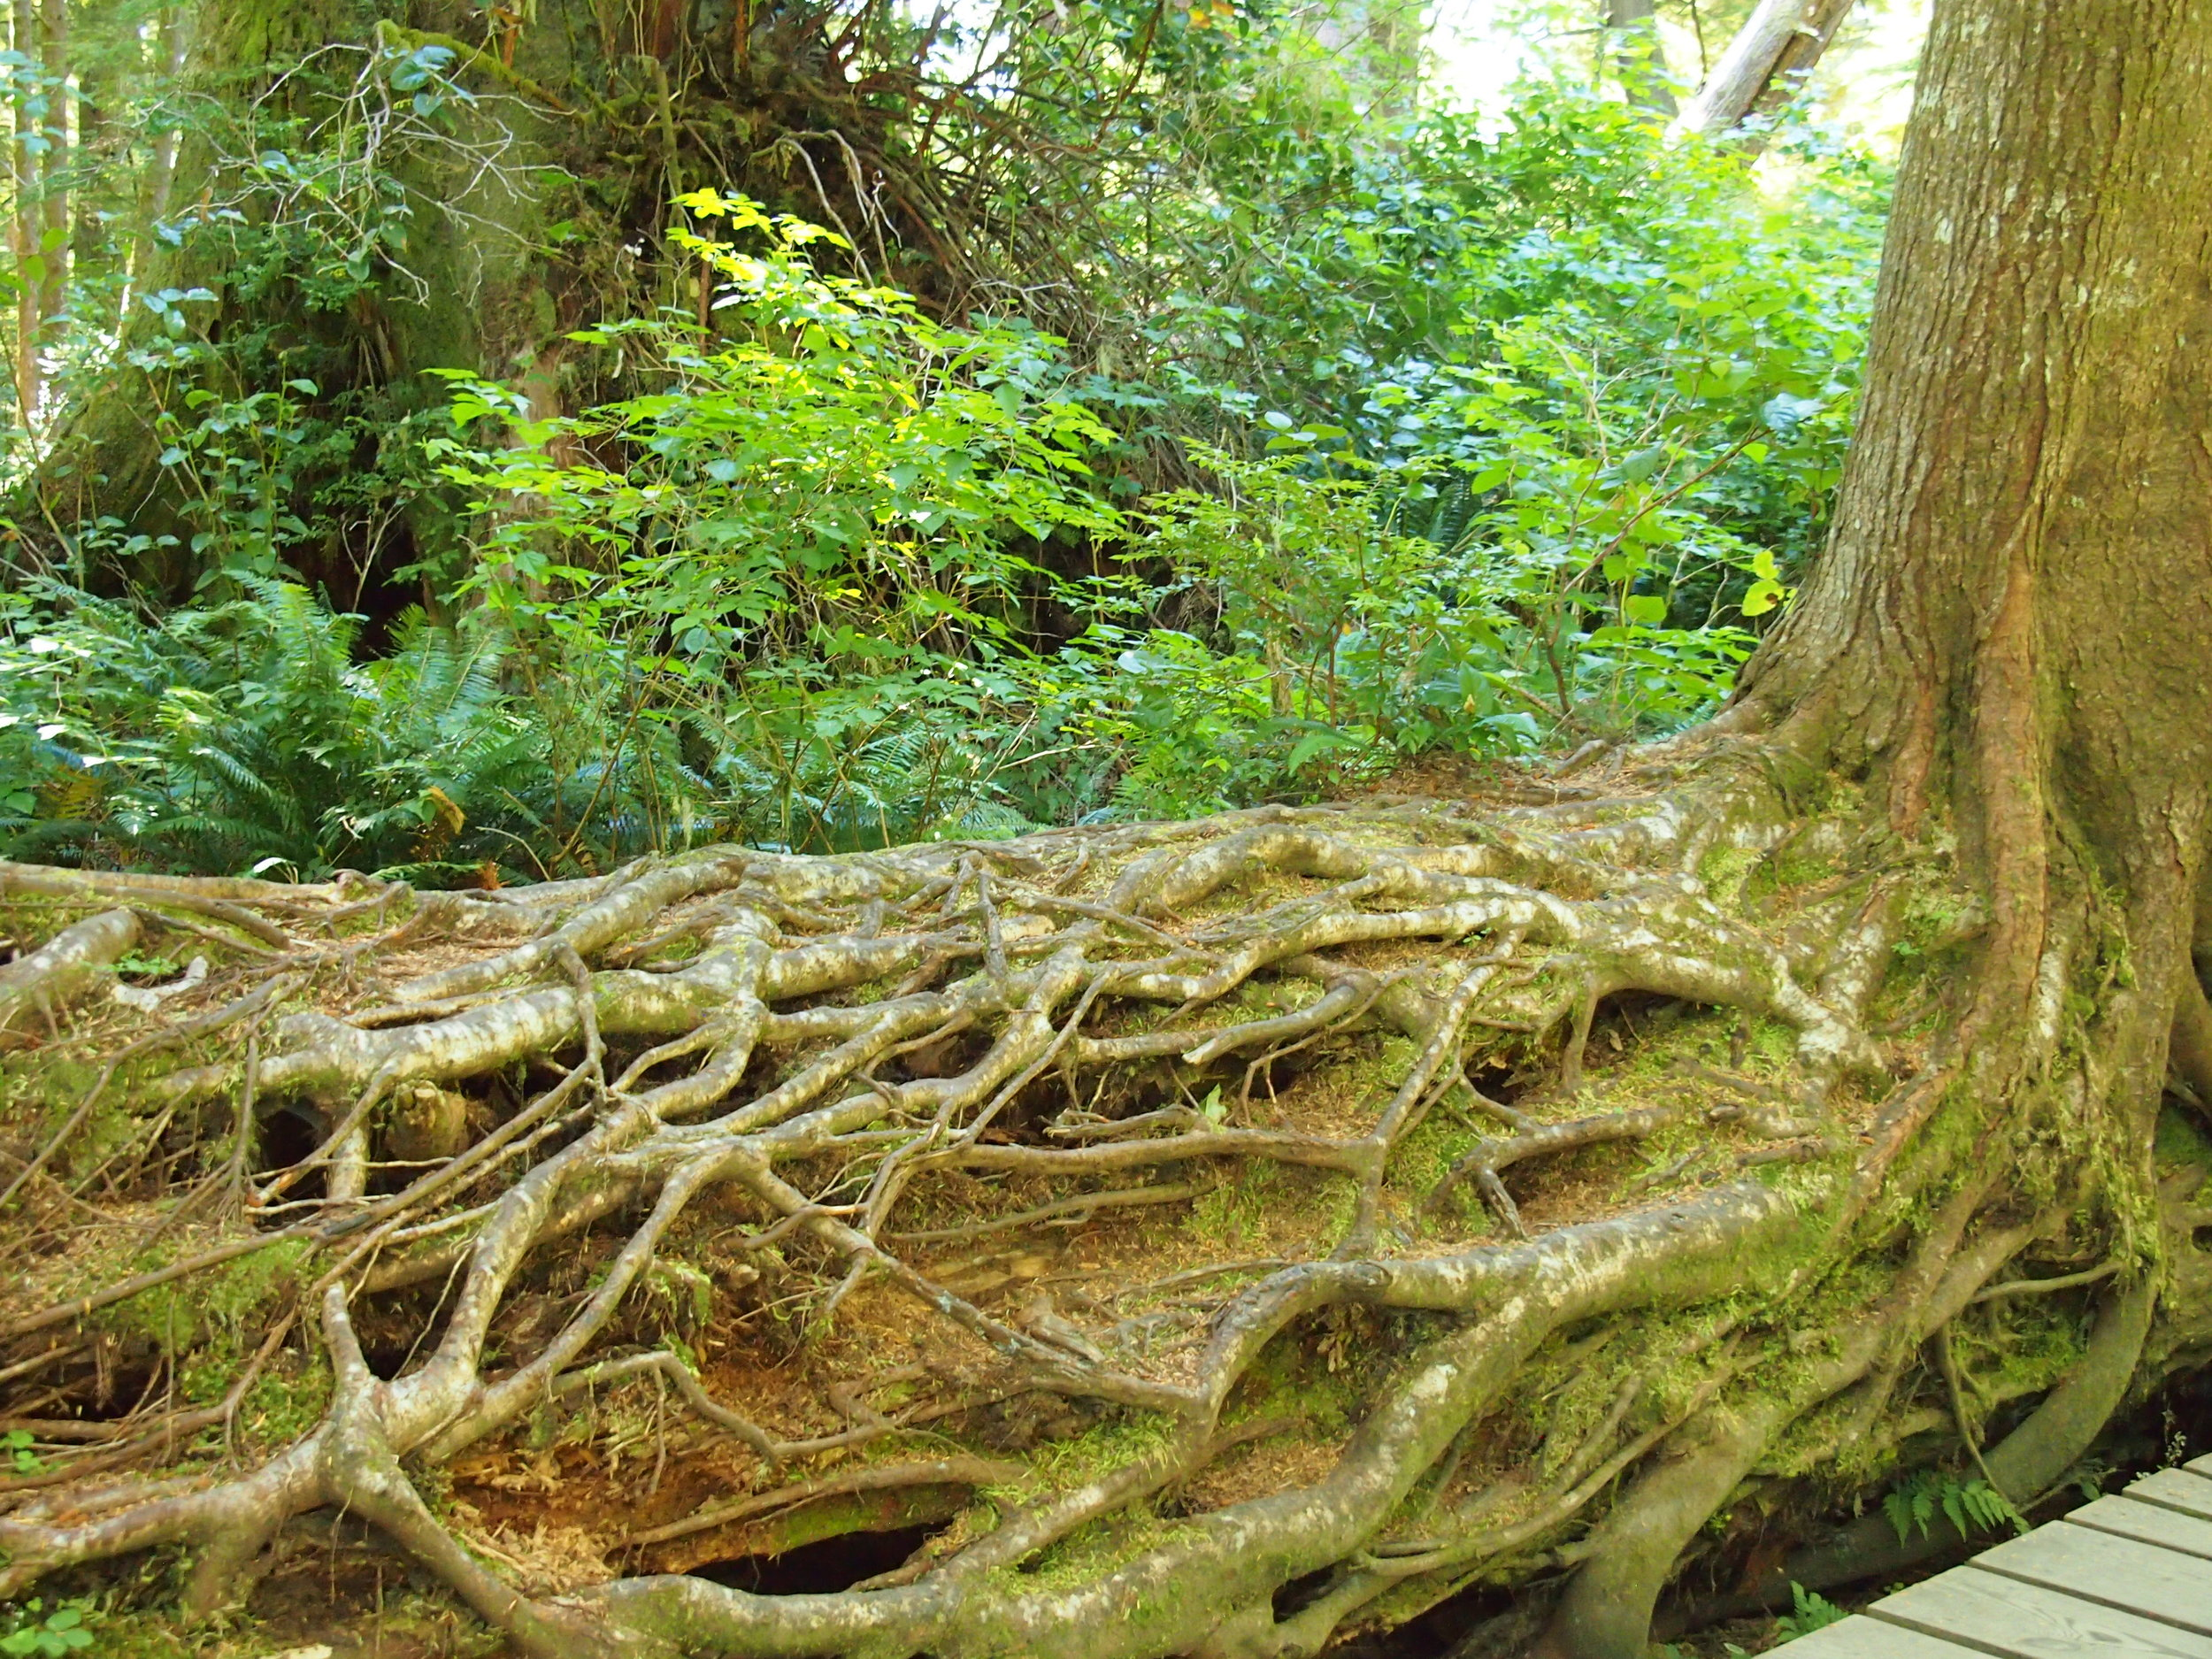 Impressive fallen, rooted nurse log